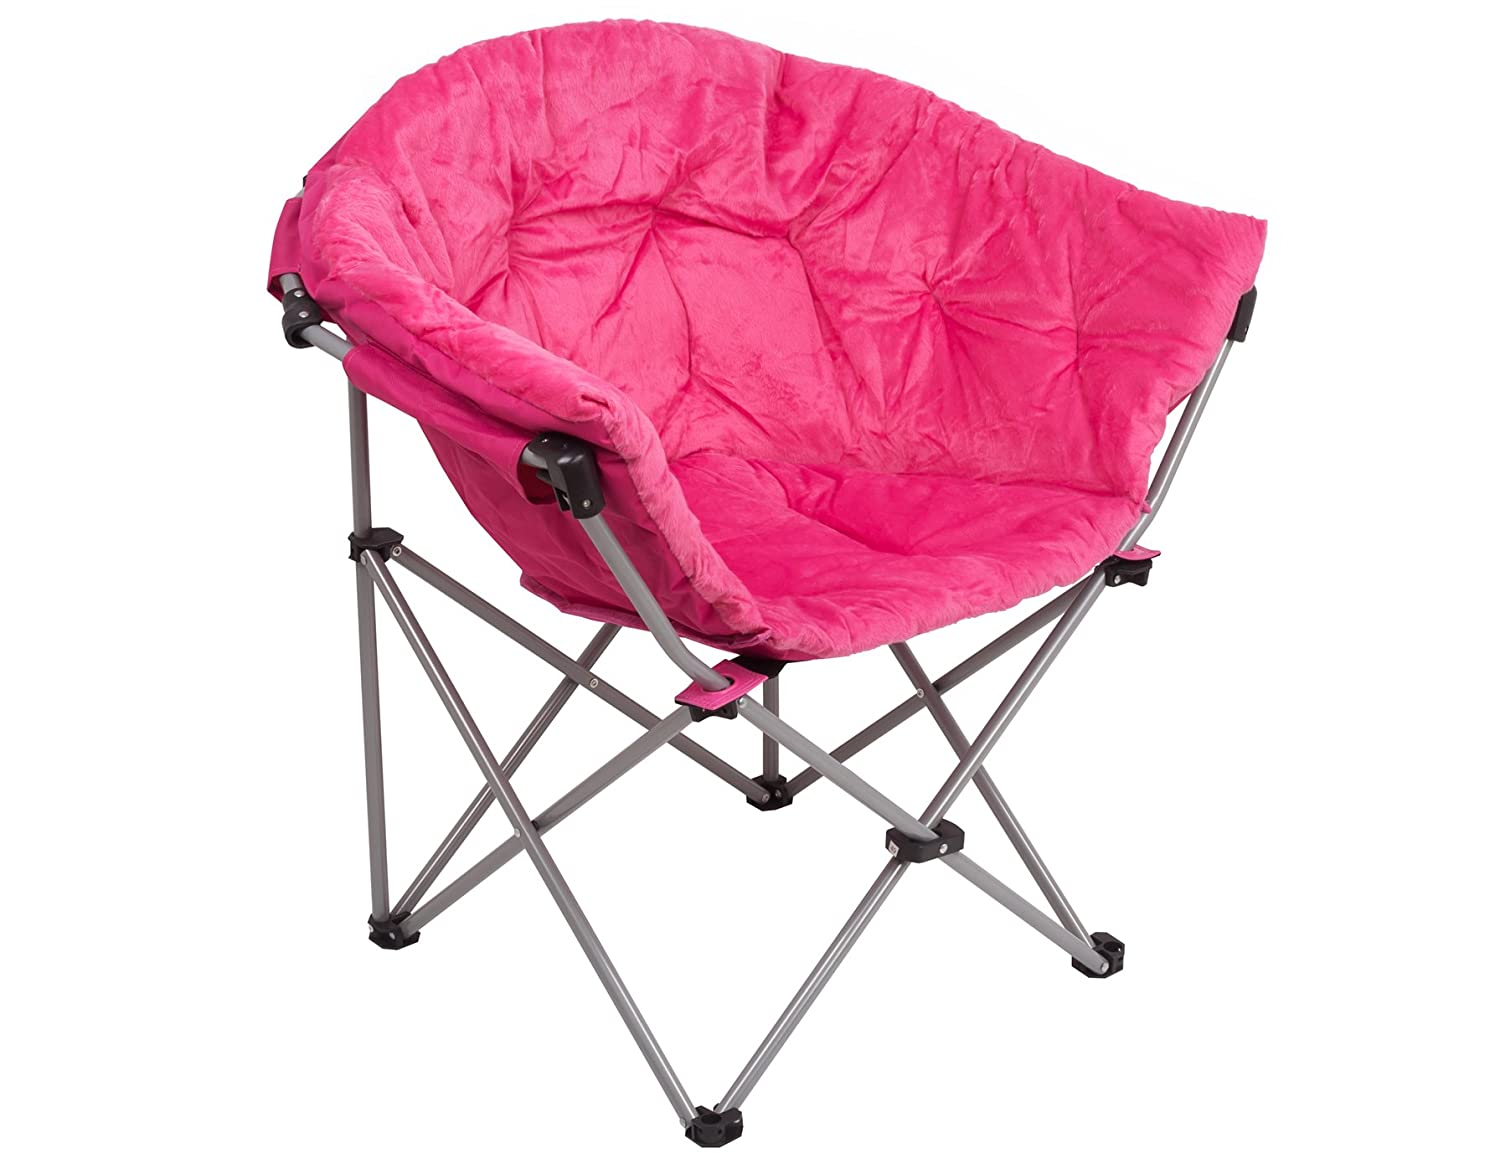 GOJOOASIS Folding Saucer Chair Moon Round Soft Comfortable Short Plush Faux Fur Padded Club Seat for TV Living Room Dorm (Pink)